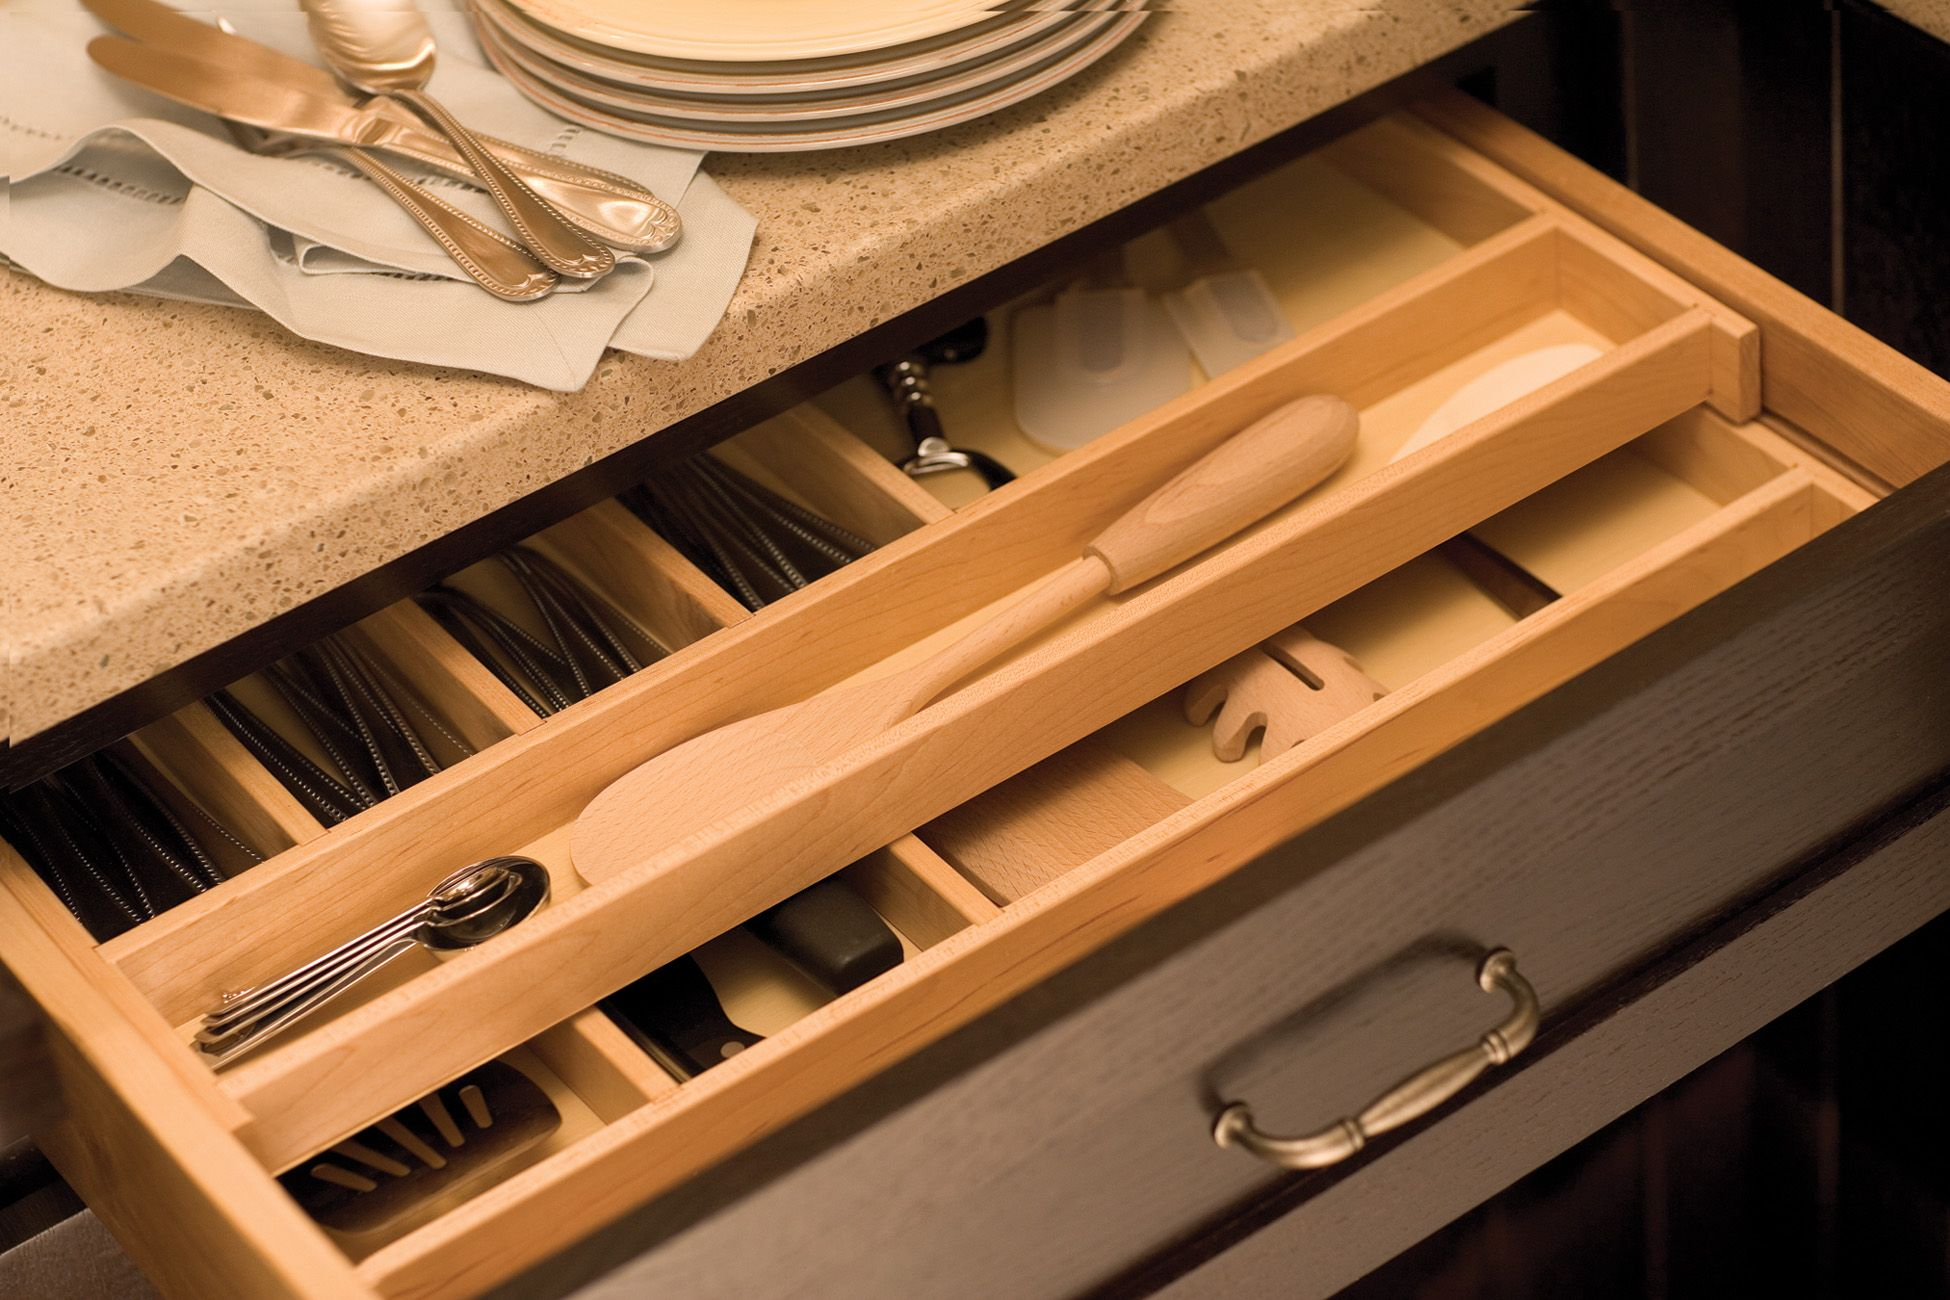 Maximize Drawer Space With A Two Tier Wood Cutlery Tray By